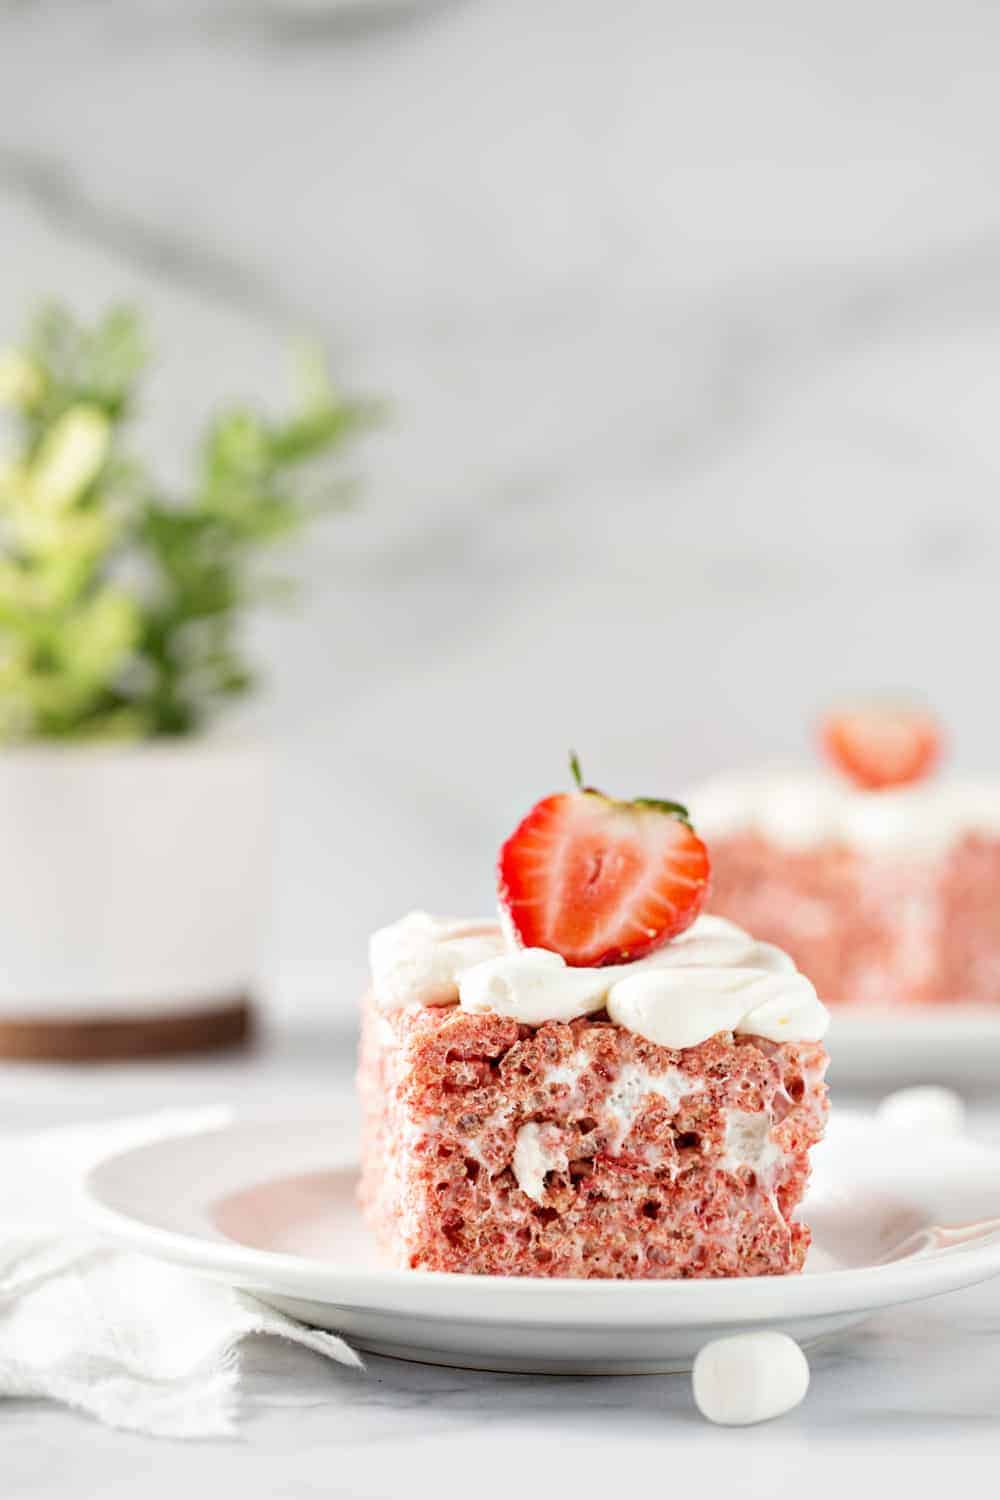 Strawberry Rice Krispie Treats are simple and totally delicious for spring! Ooey, gooey and loaded with strawberry flavor!